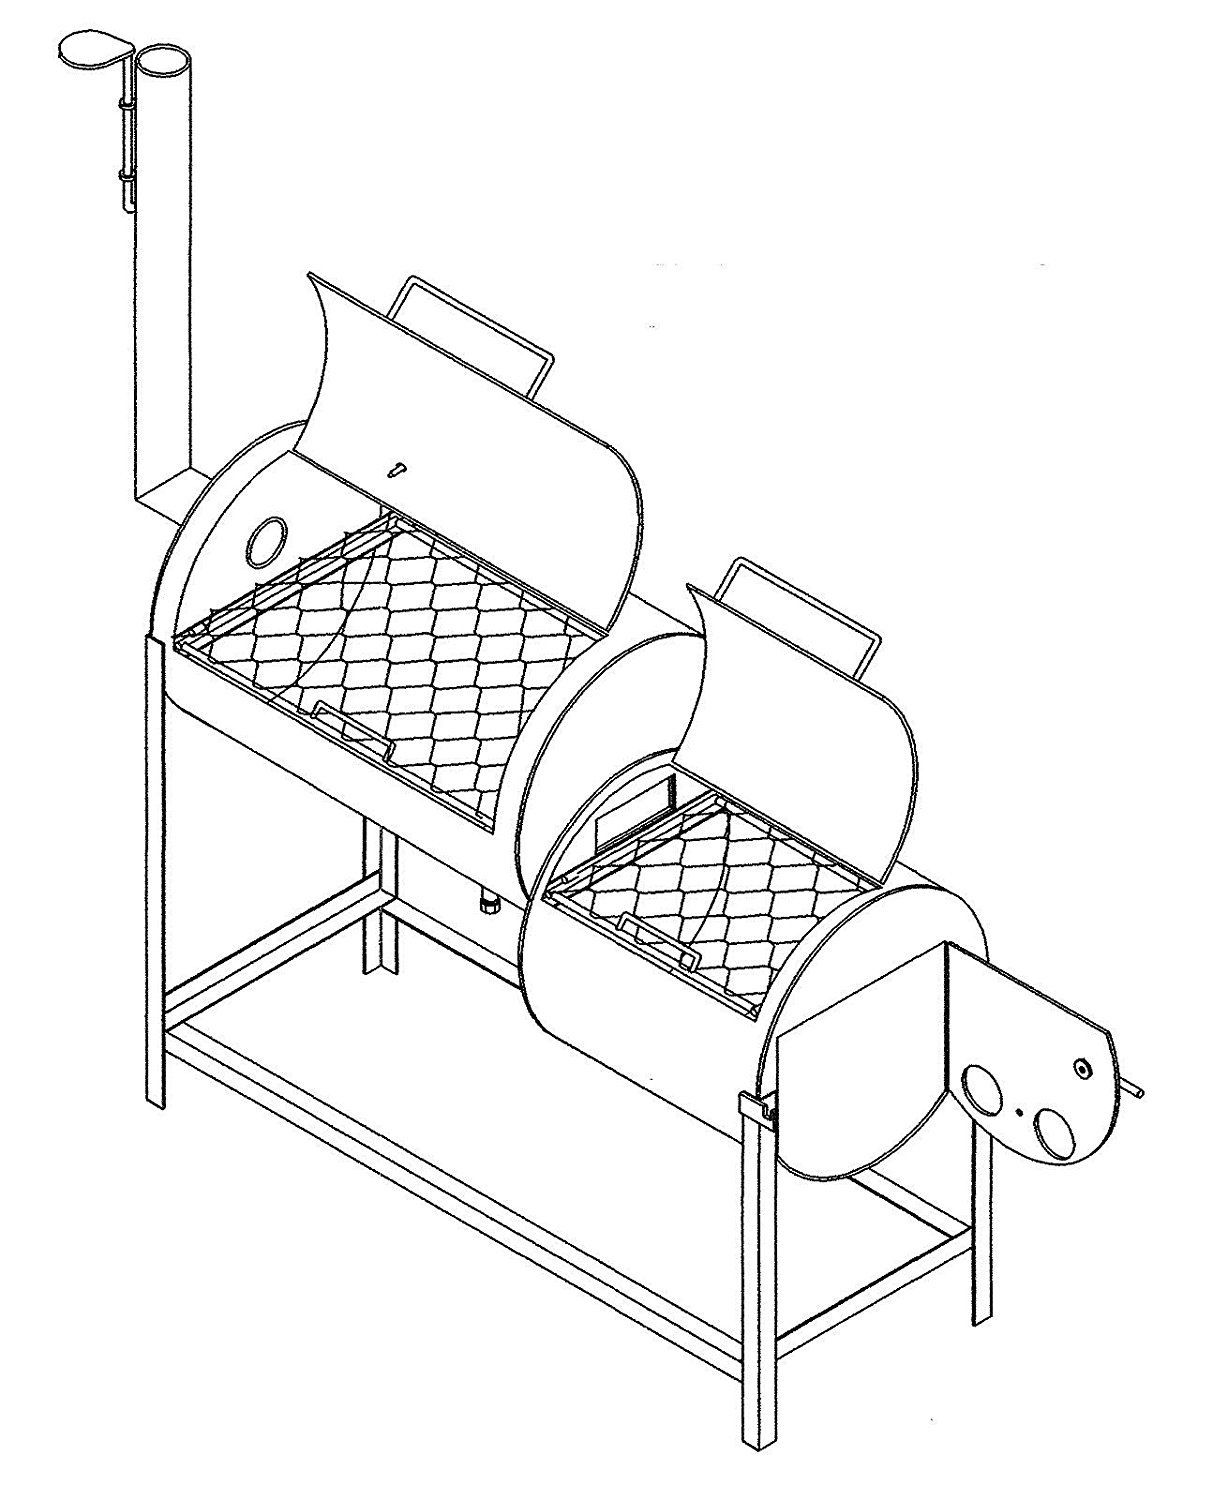 32 X 20 Bbq Smoker Pit Amp Grill Plans Blueprints